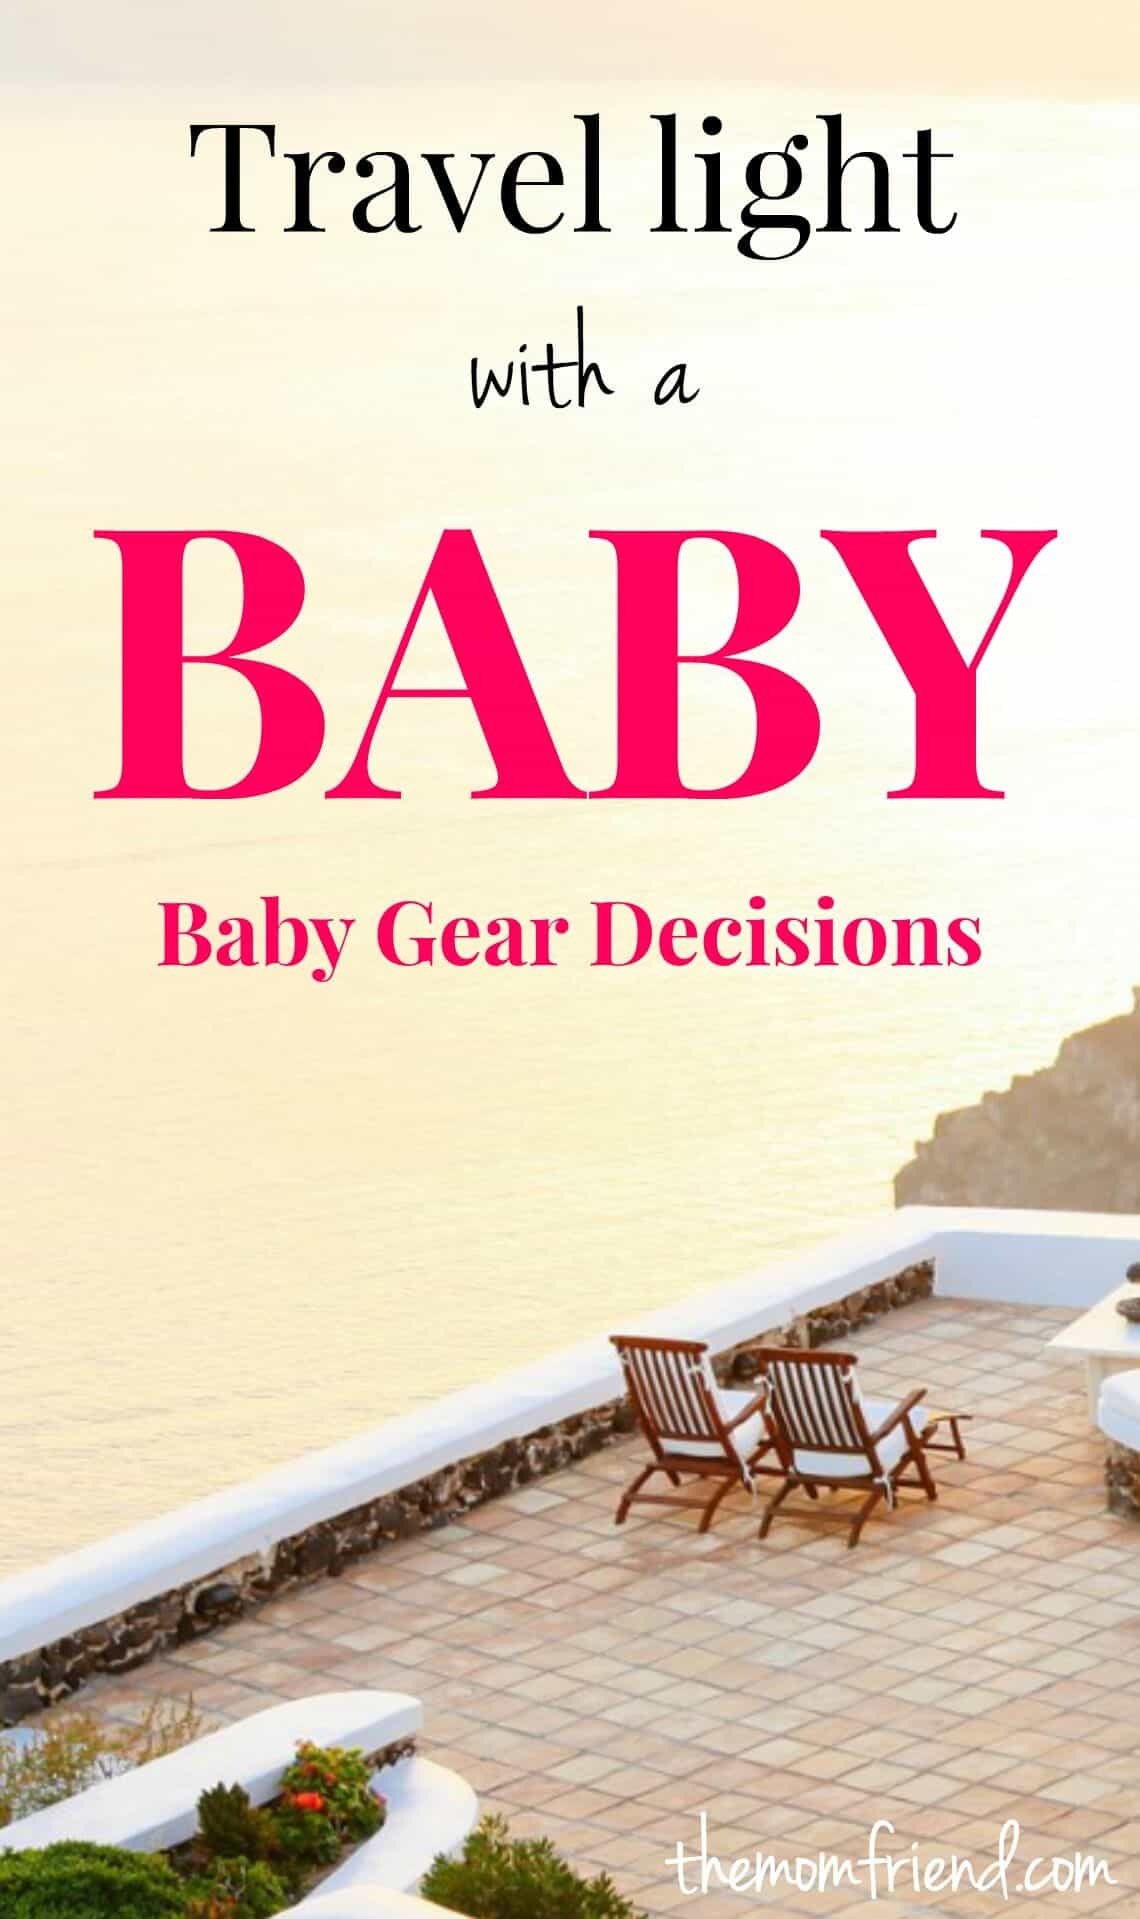 Choosing the right baby gear to bring while traveling with a baby makes all the difference. Check out these tips for packing light so you can travel carry-only or fly more relaxed!   The Mom Friend   themomfriend.com